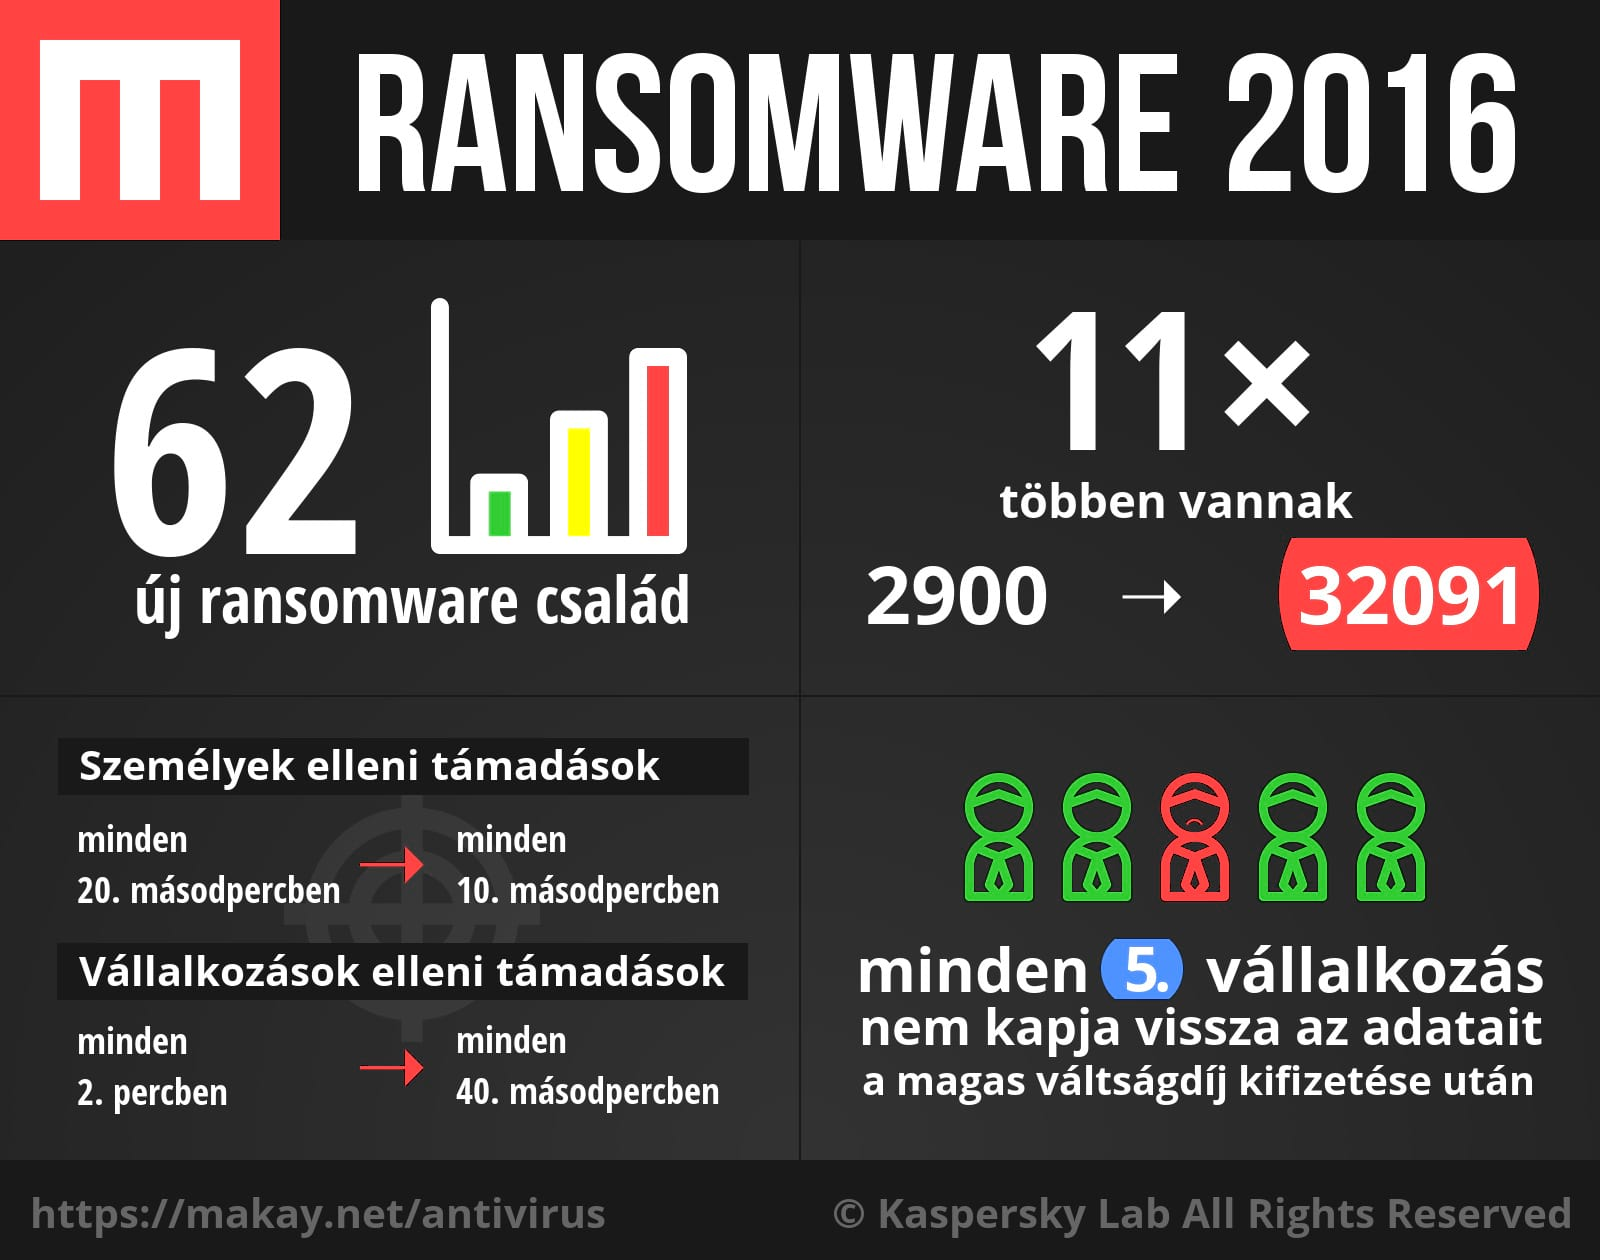 Ransomware 2016